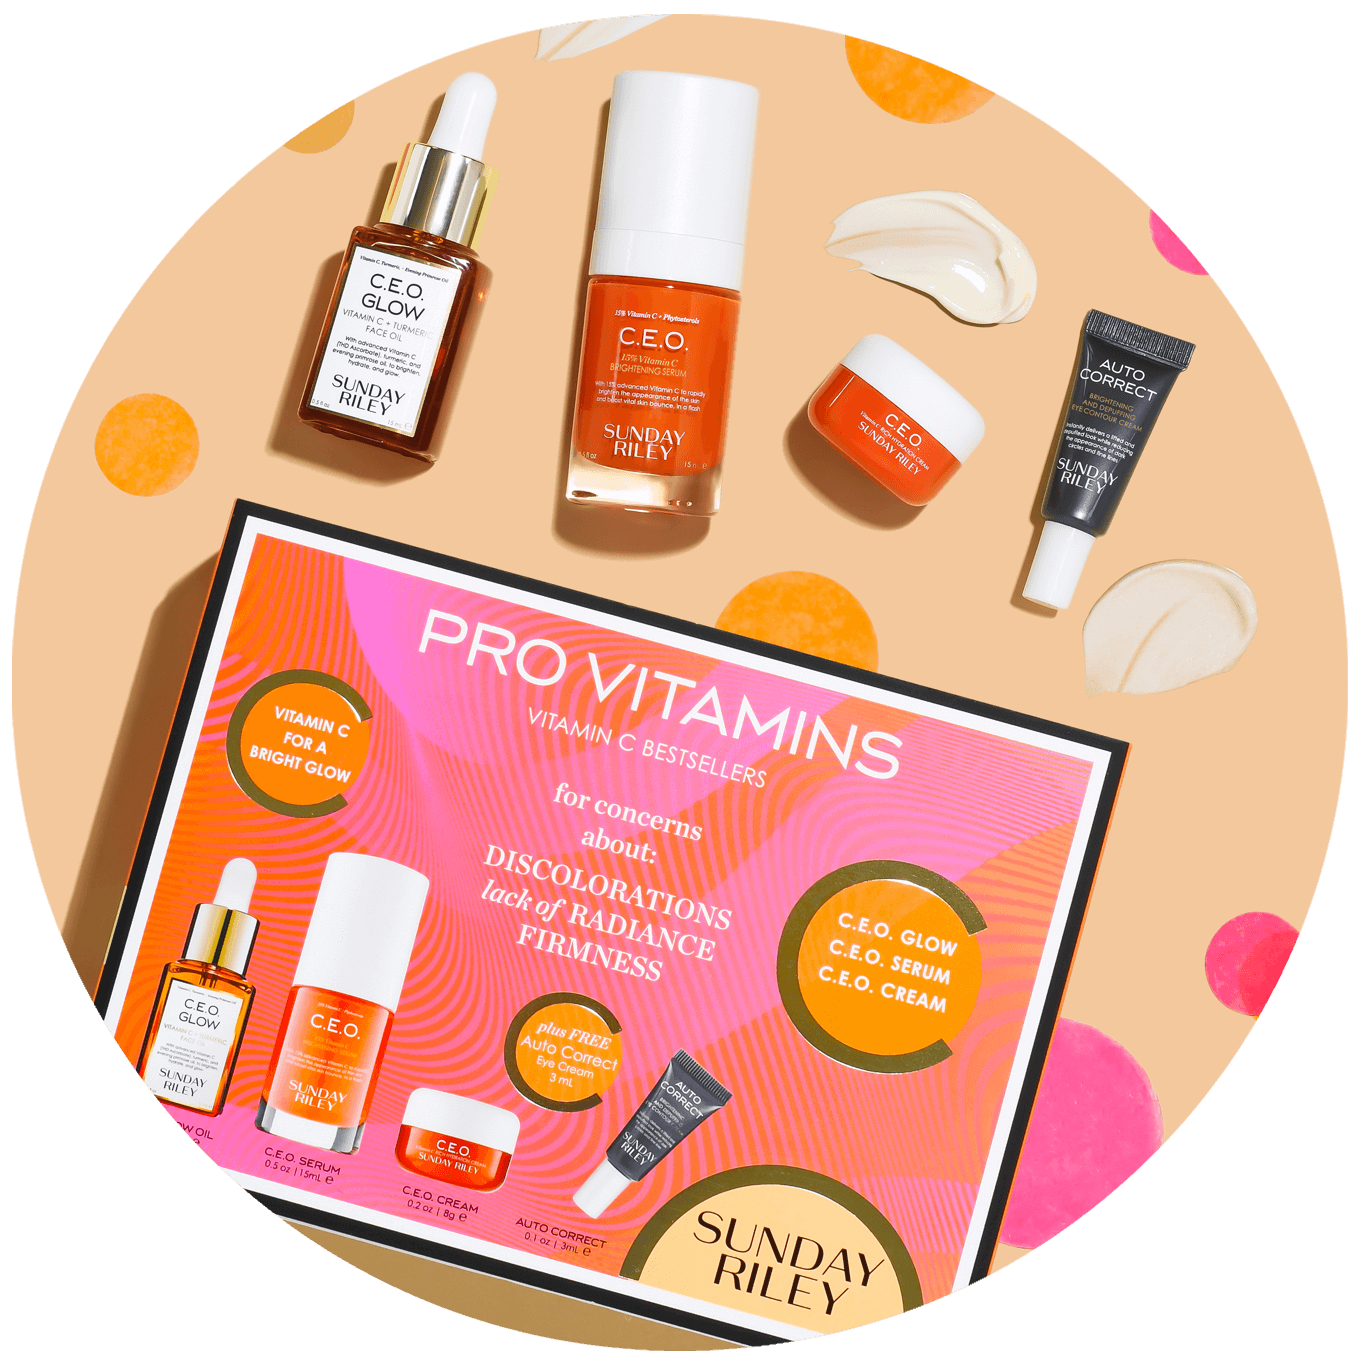 pro vitamins vitamin c bestsellers kit, for concerns about discolorations, lack of radiance, firmness